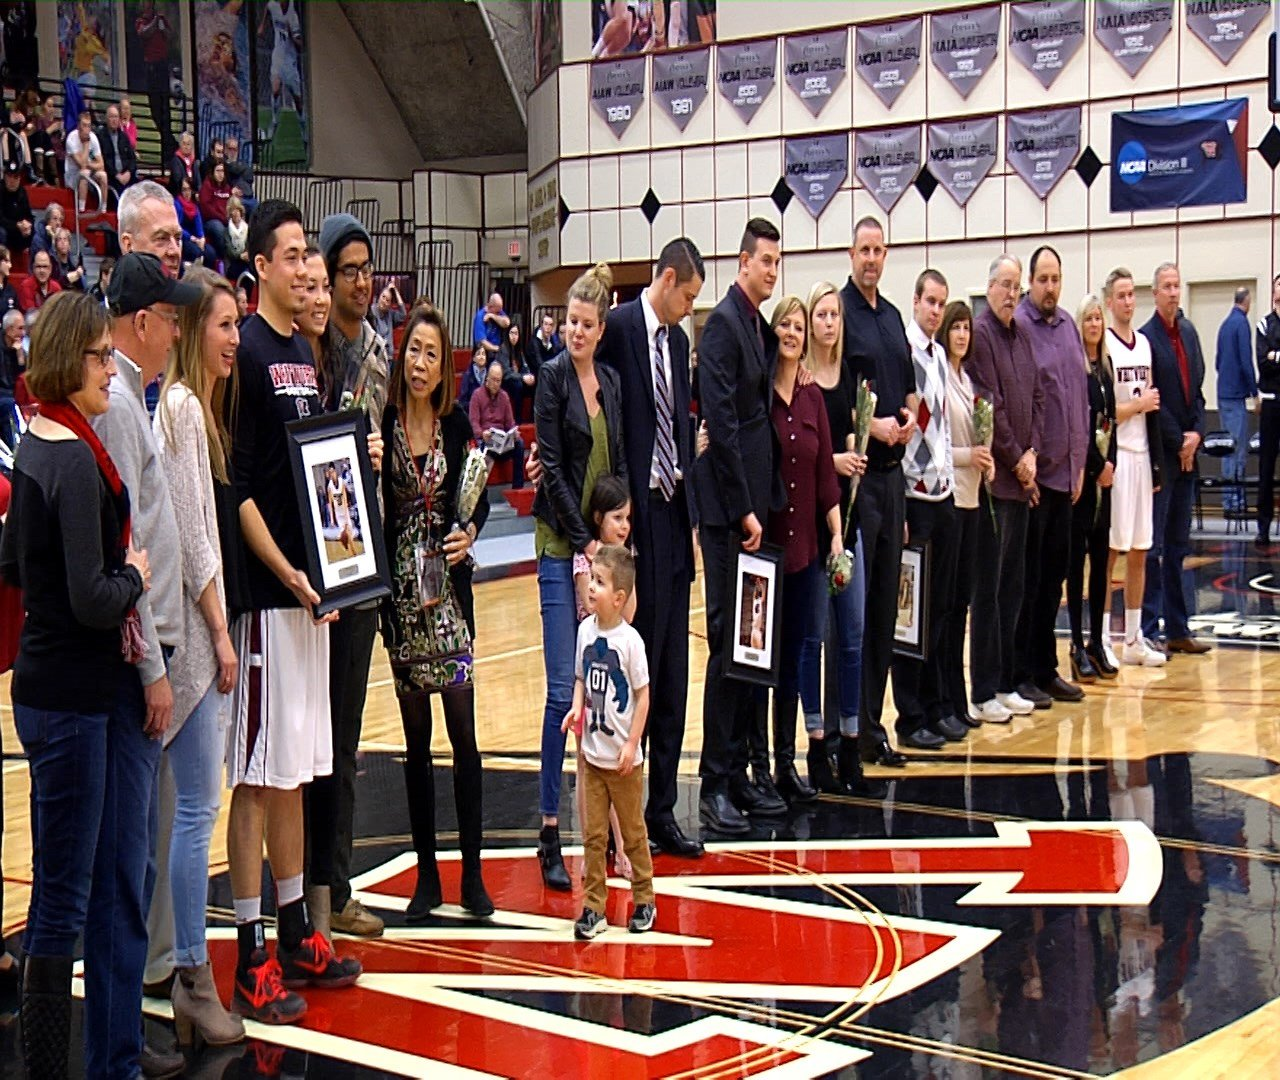 George Valle scored 20 points to lead the Pirates on Senior Night.